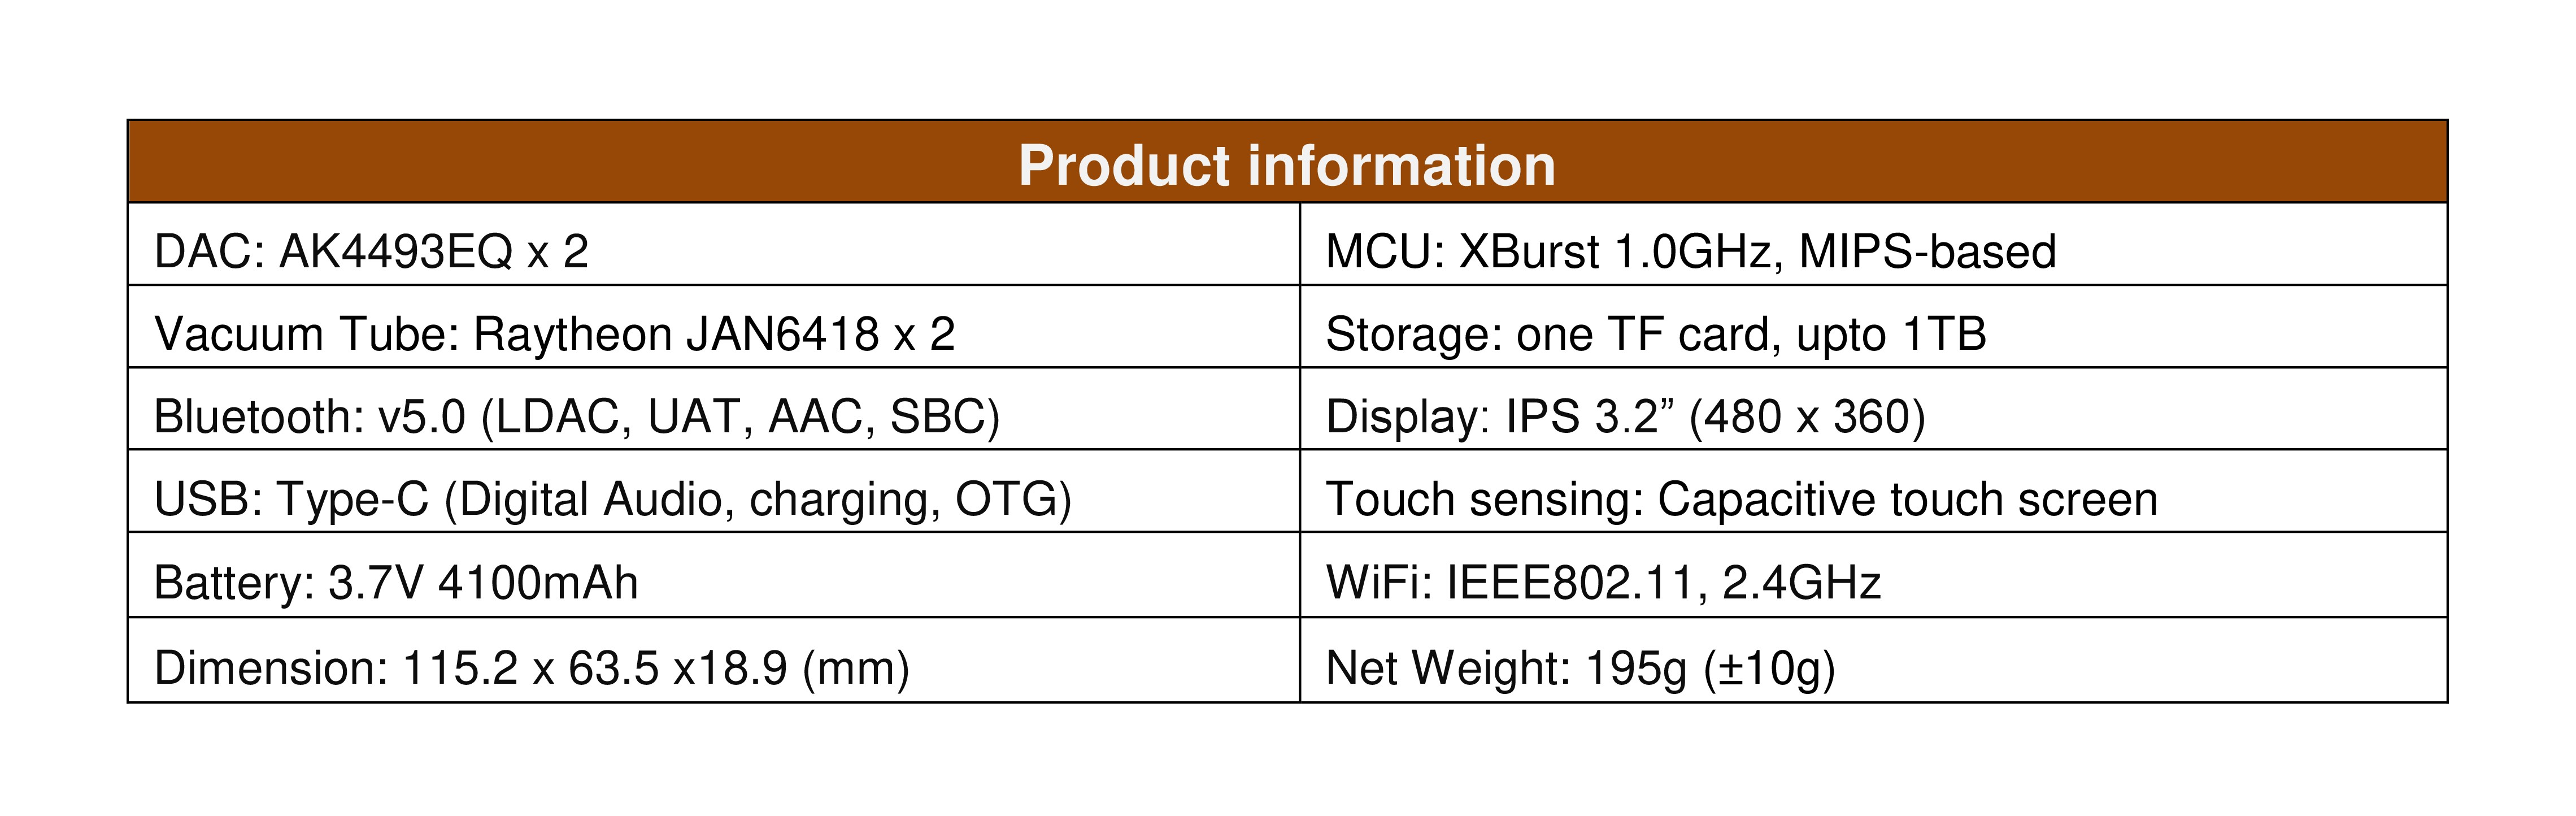 N3Pro Specification (Product Info).jpg